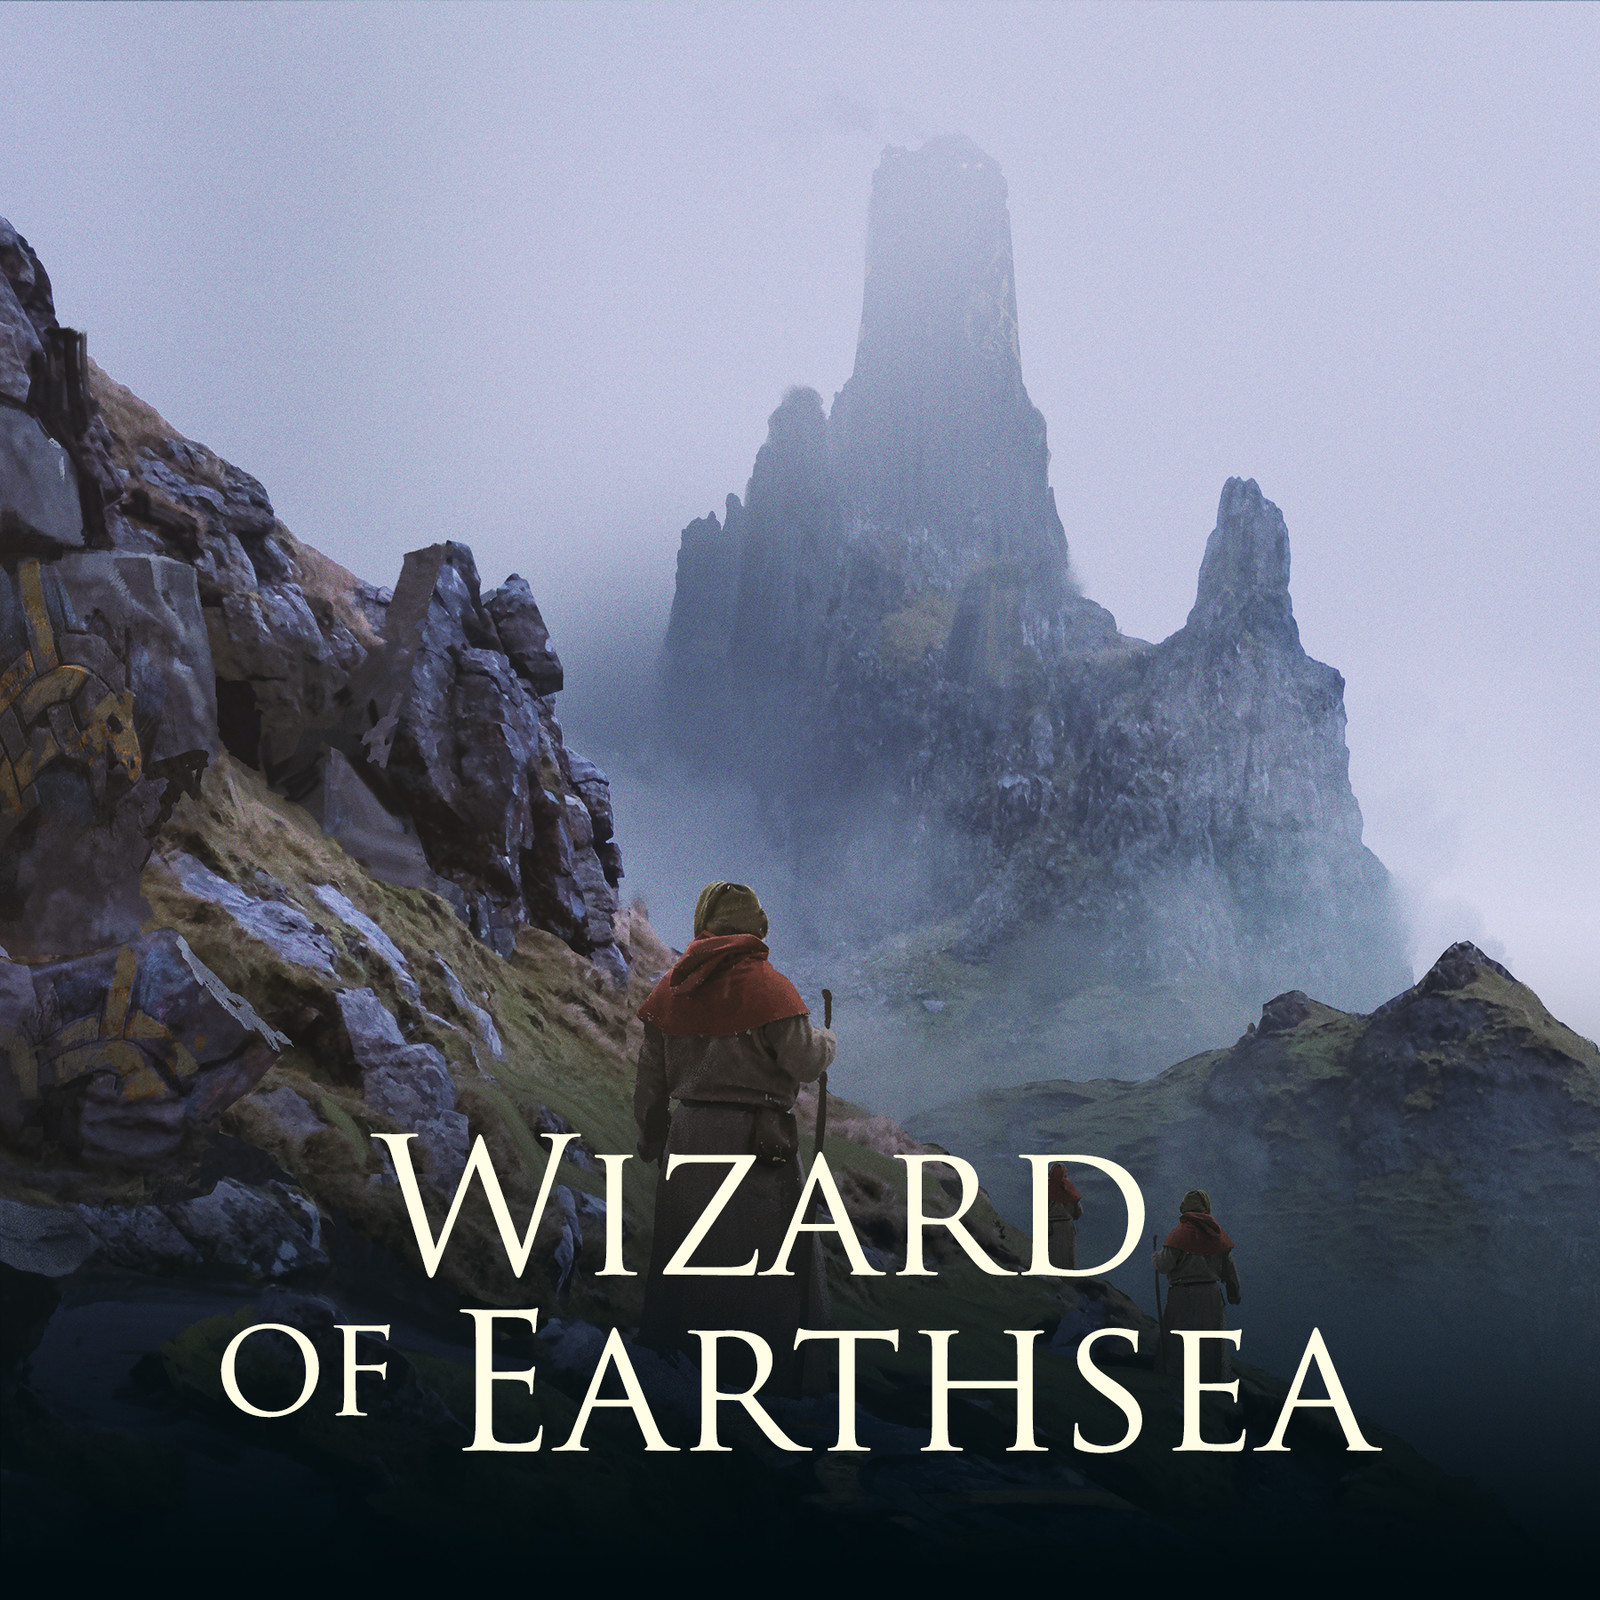 Wizard of Earthsea Pt. 2